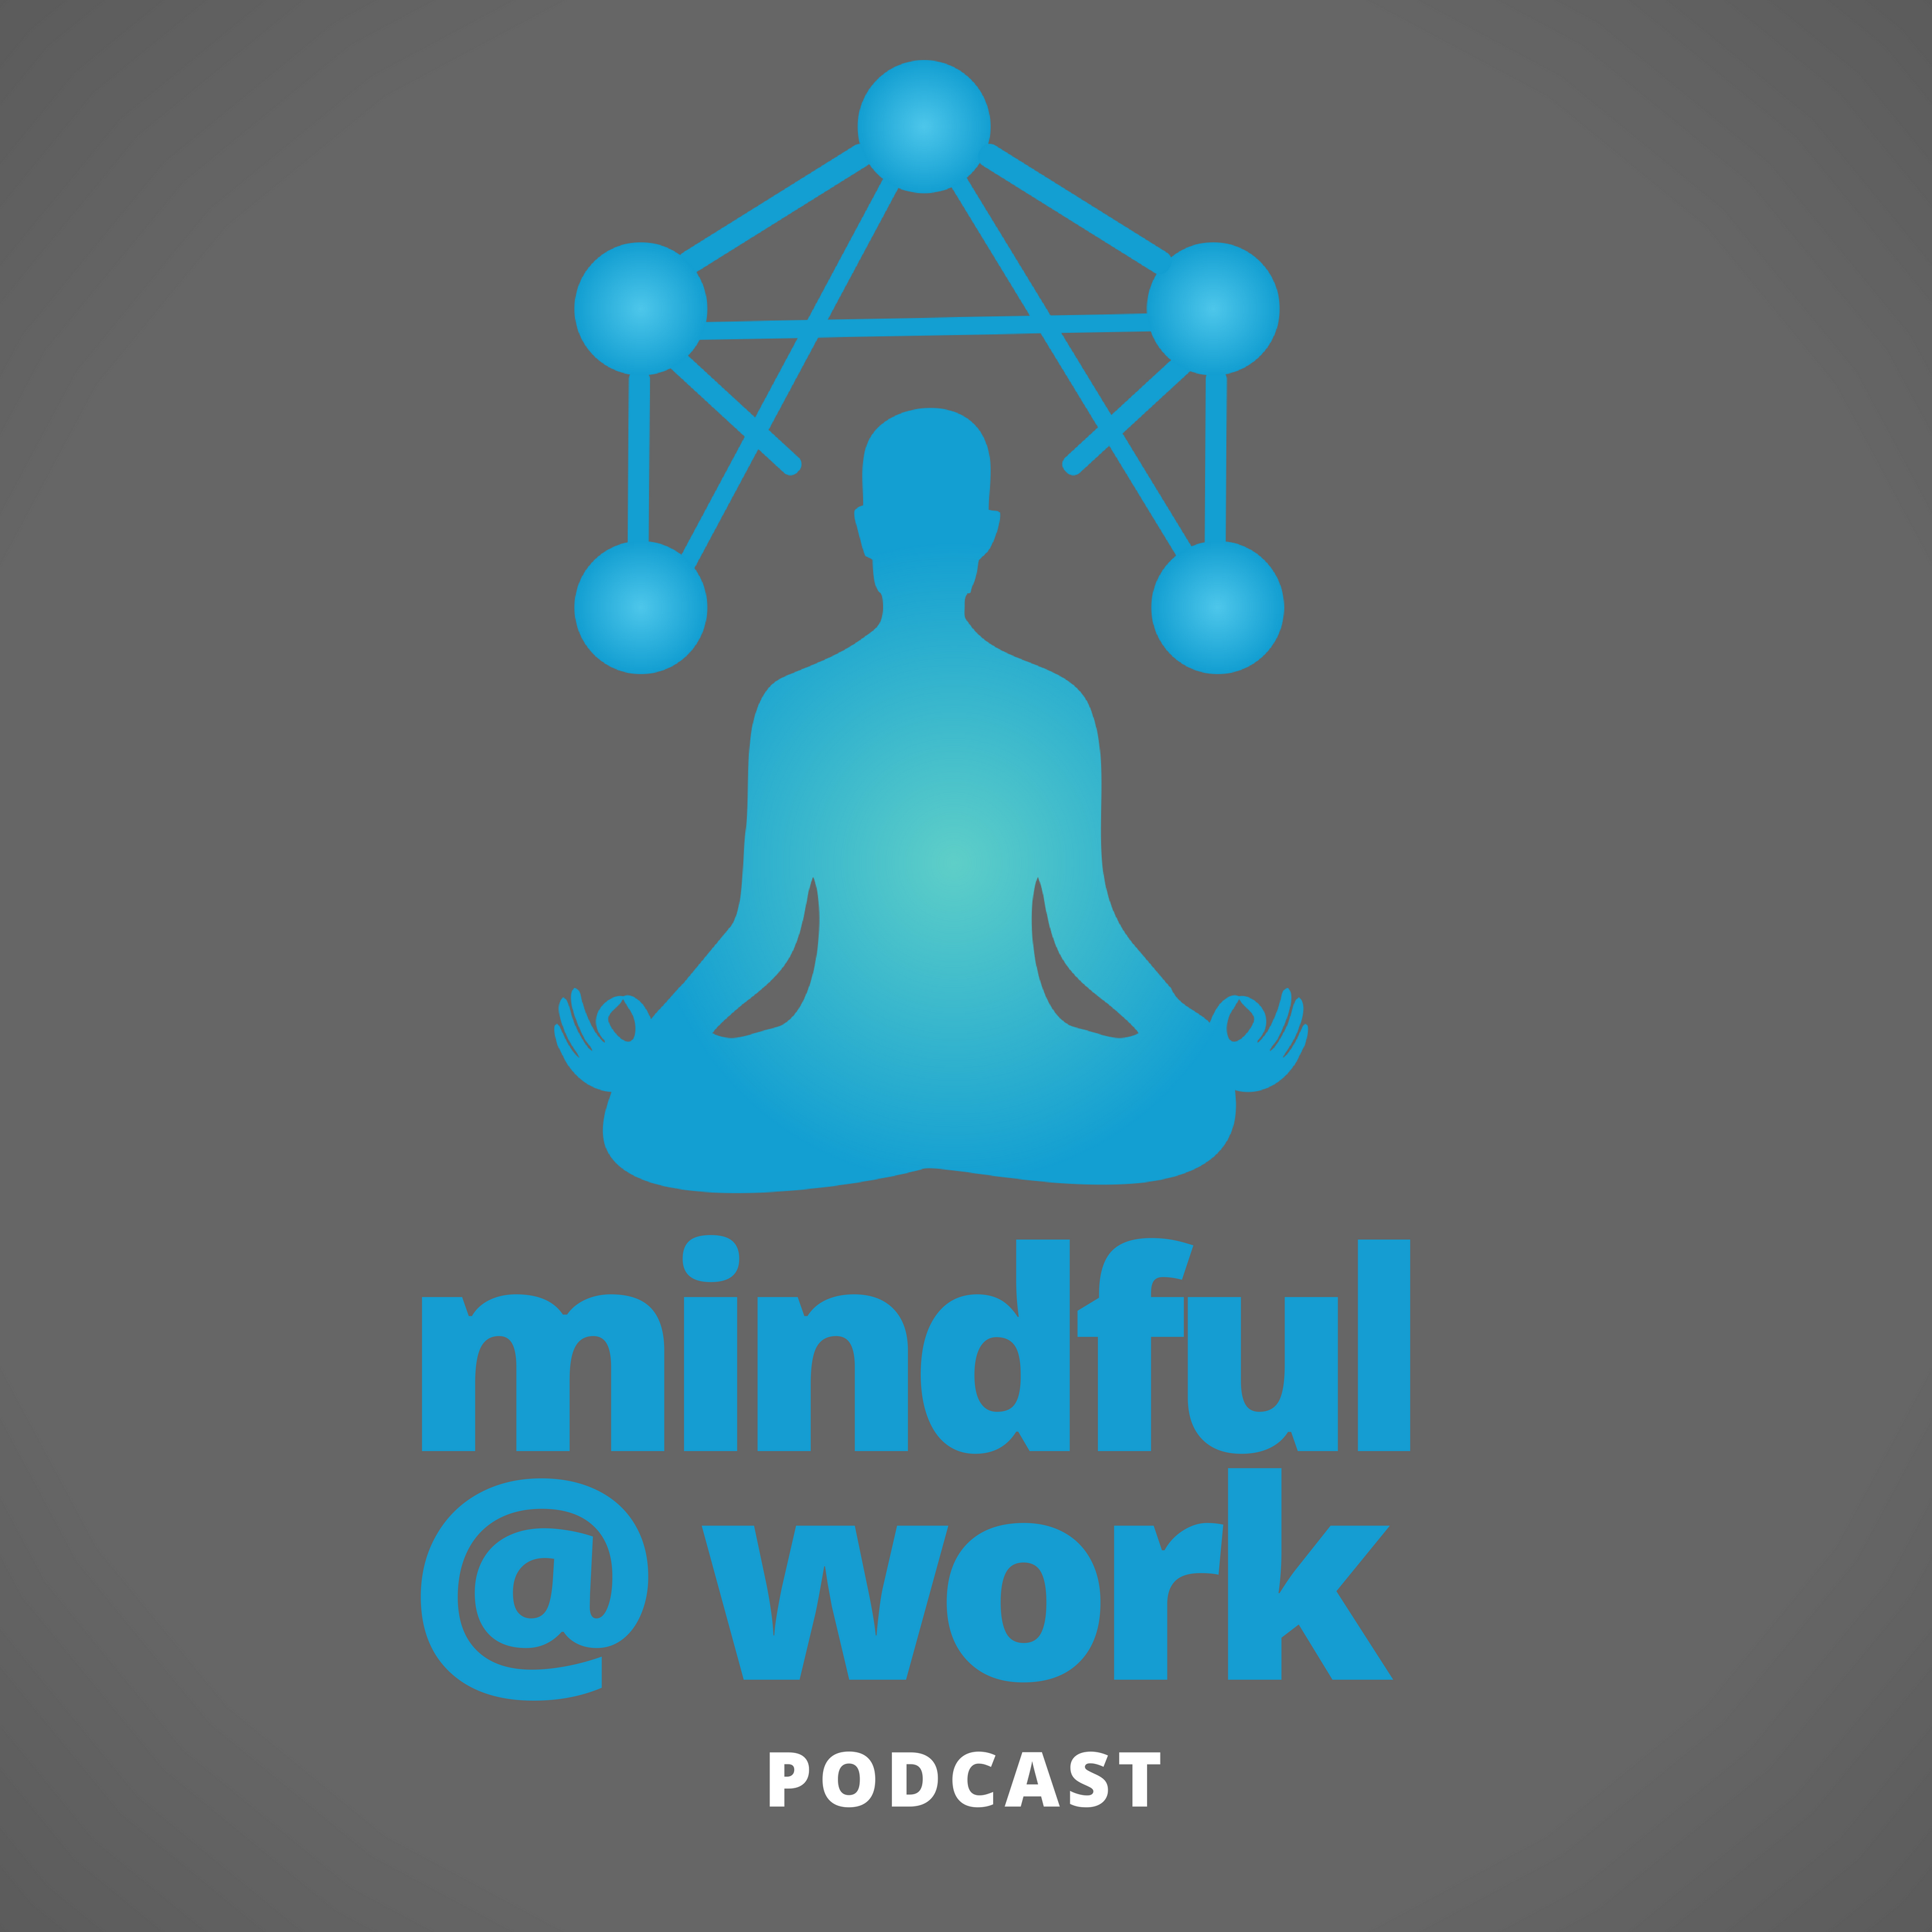 Mindful @Work - A Podcast for Professionals to Have Greater Awareness And Intentional Action In Their Life